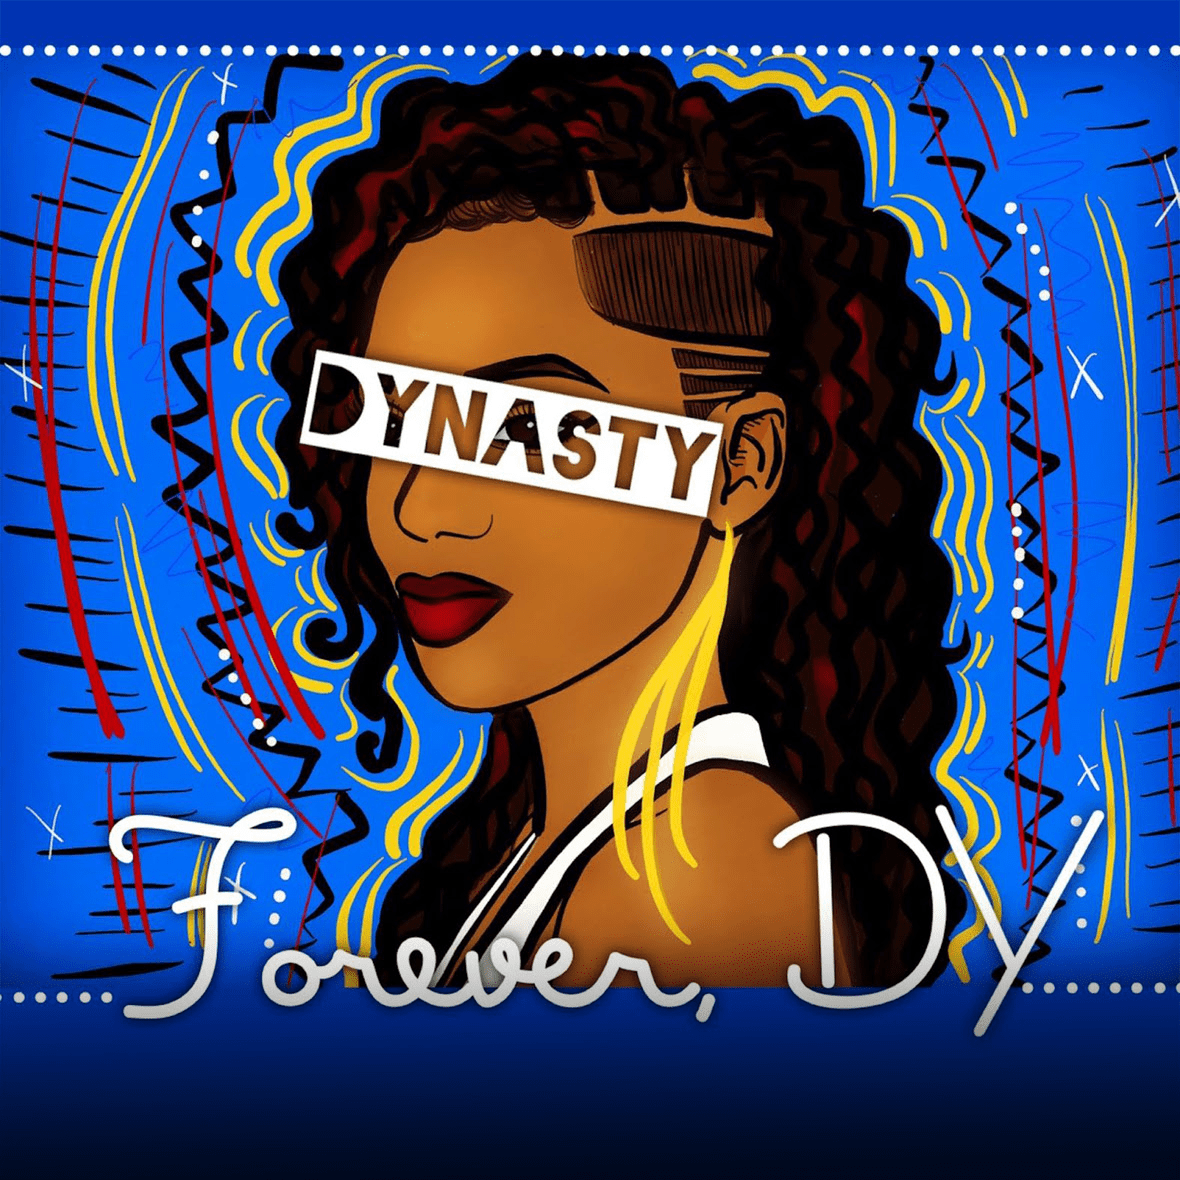 Dynasty (@yagirldynasty) - One Day